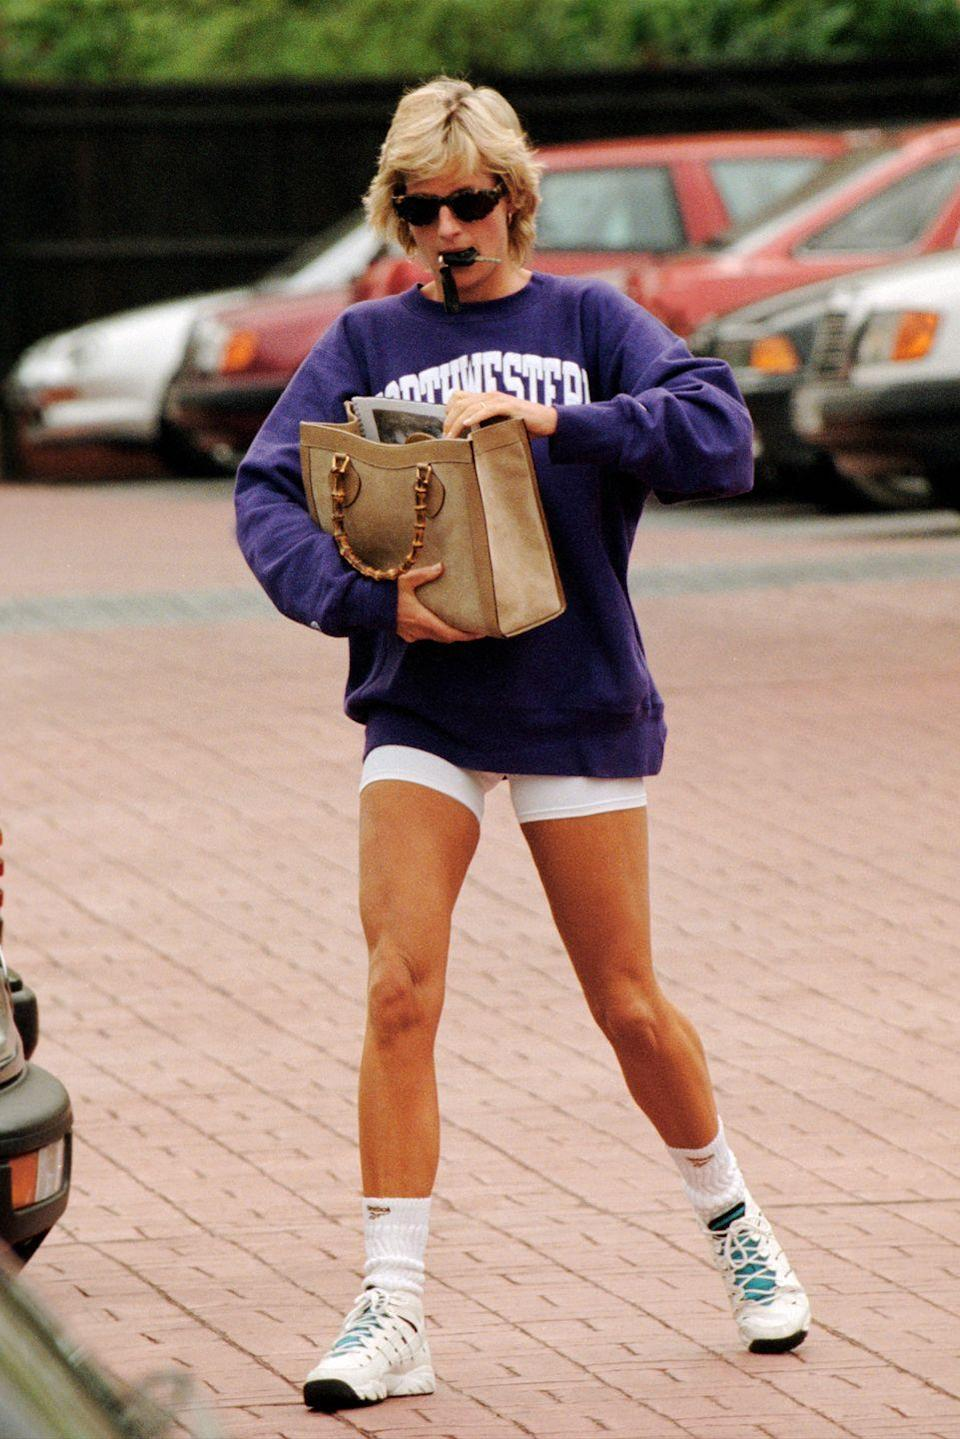 <p>Continuing her penchant for collegiate sweatshirts, Diana represented another American university, sporting a Northwestern sweatshirt and white shorts. Adding some luxury, Diana accessorized with a Gucci tote. </p>